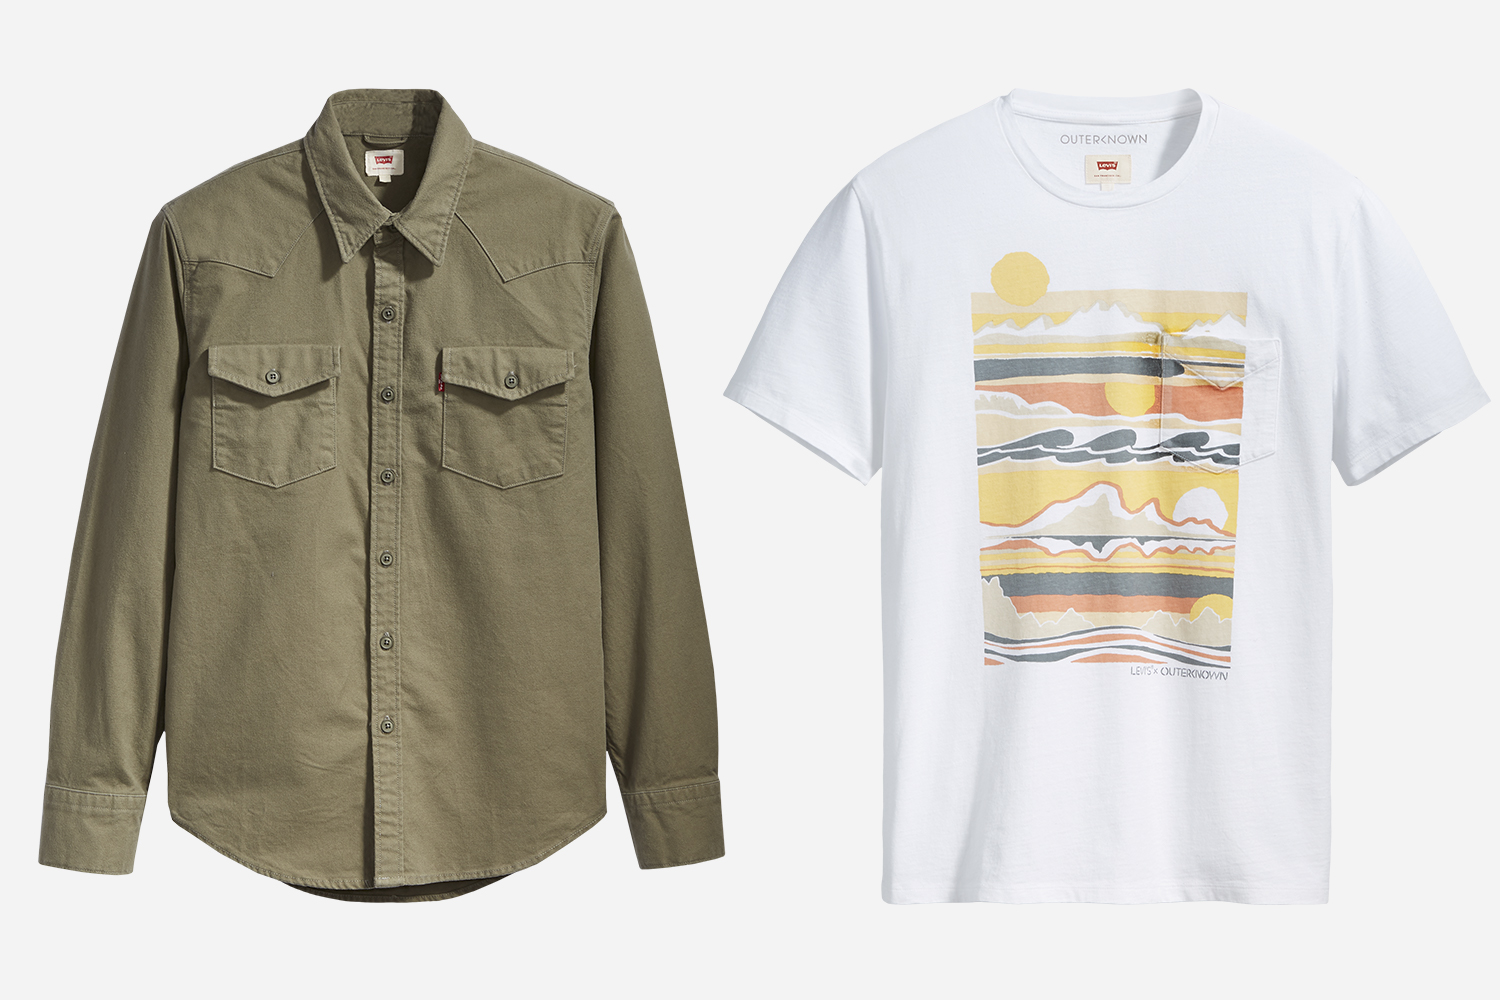 Levi's Wellthread x Outerknown Western Shirts and Pocket Tees